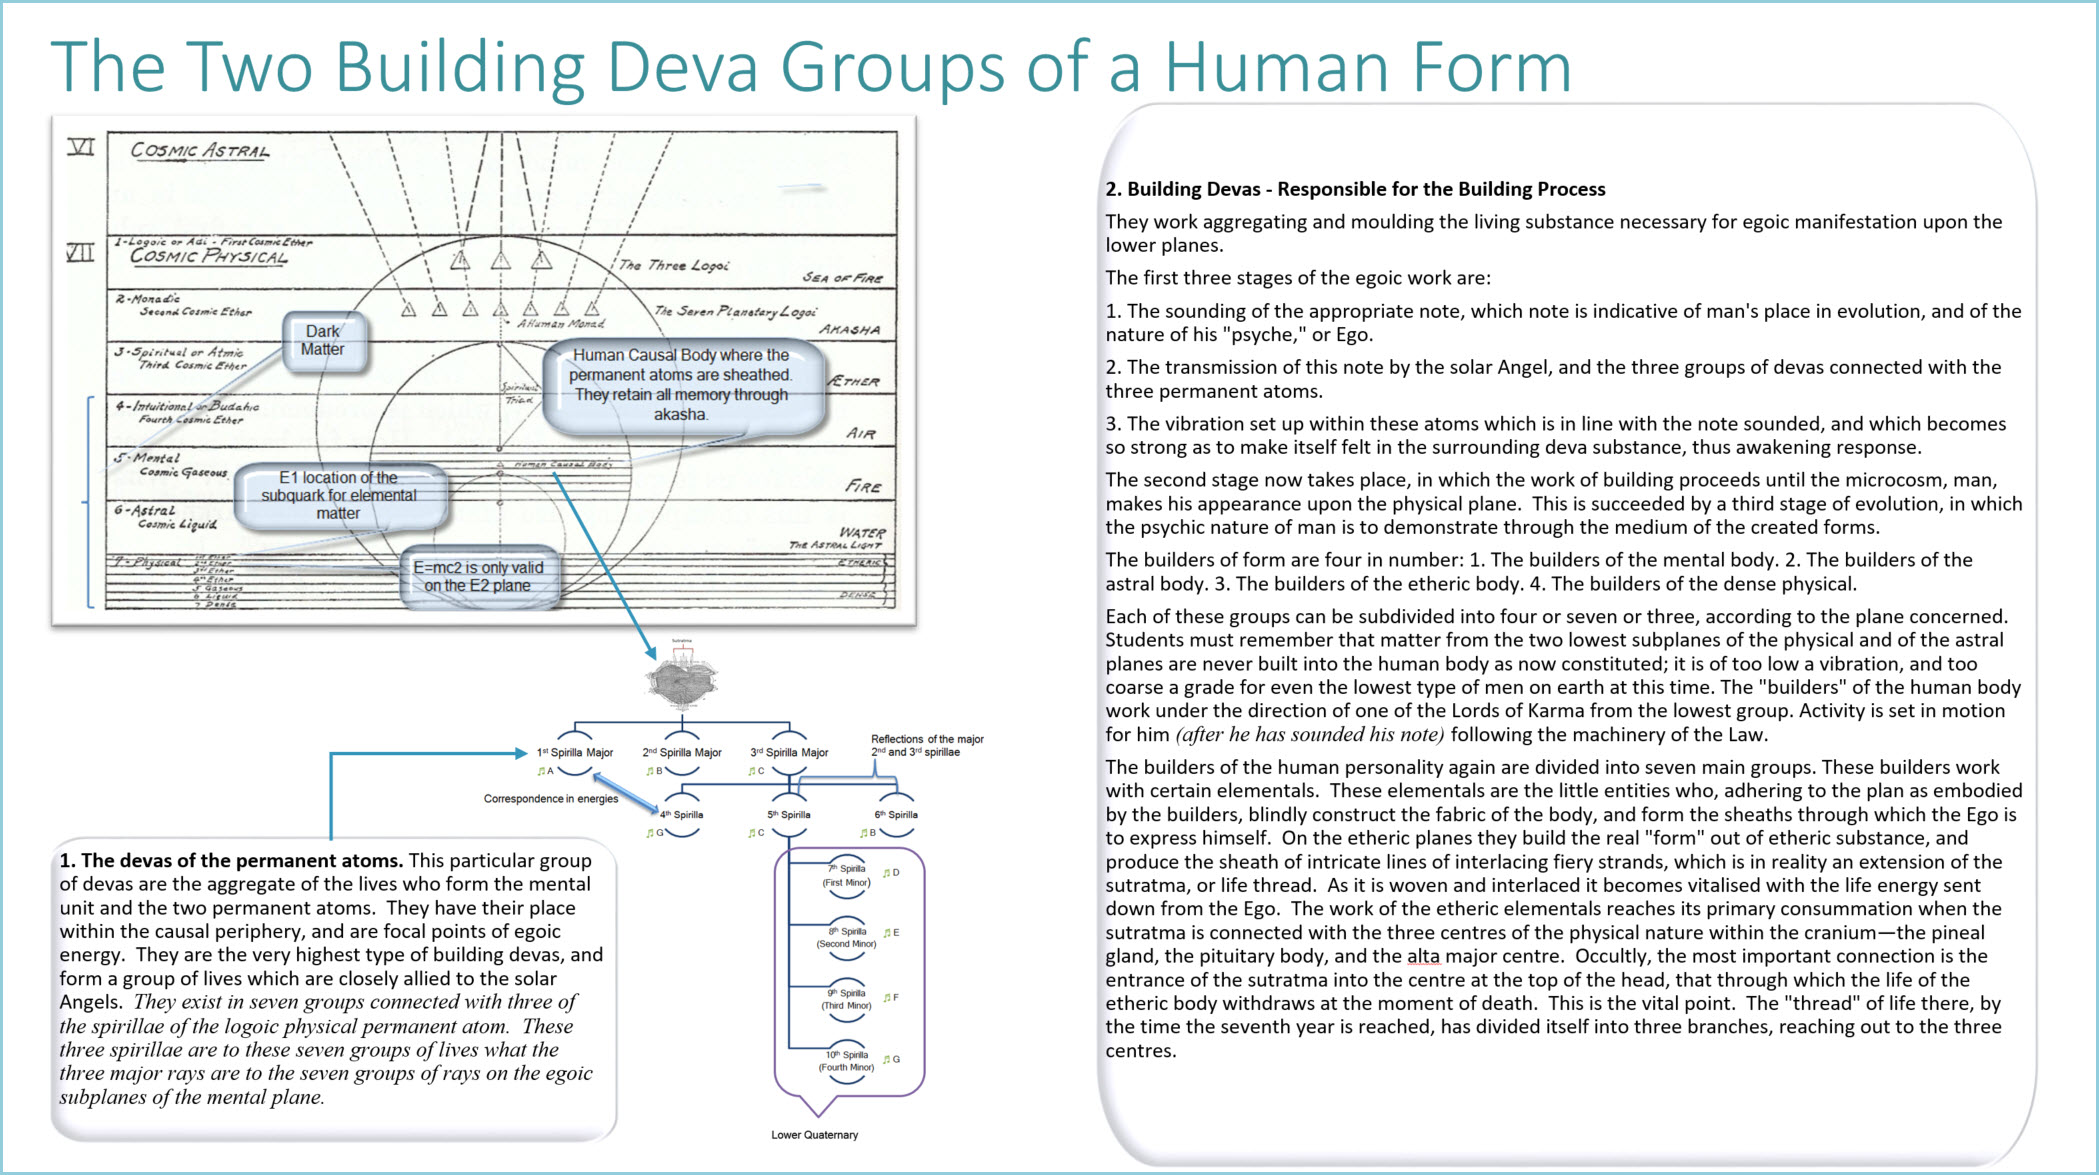 The Two Building Deva Groups of a Human Form